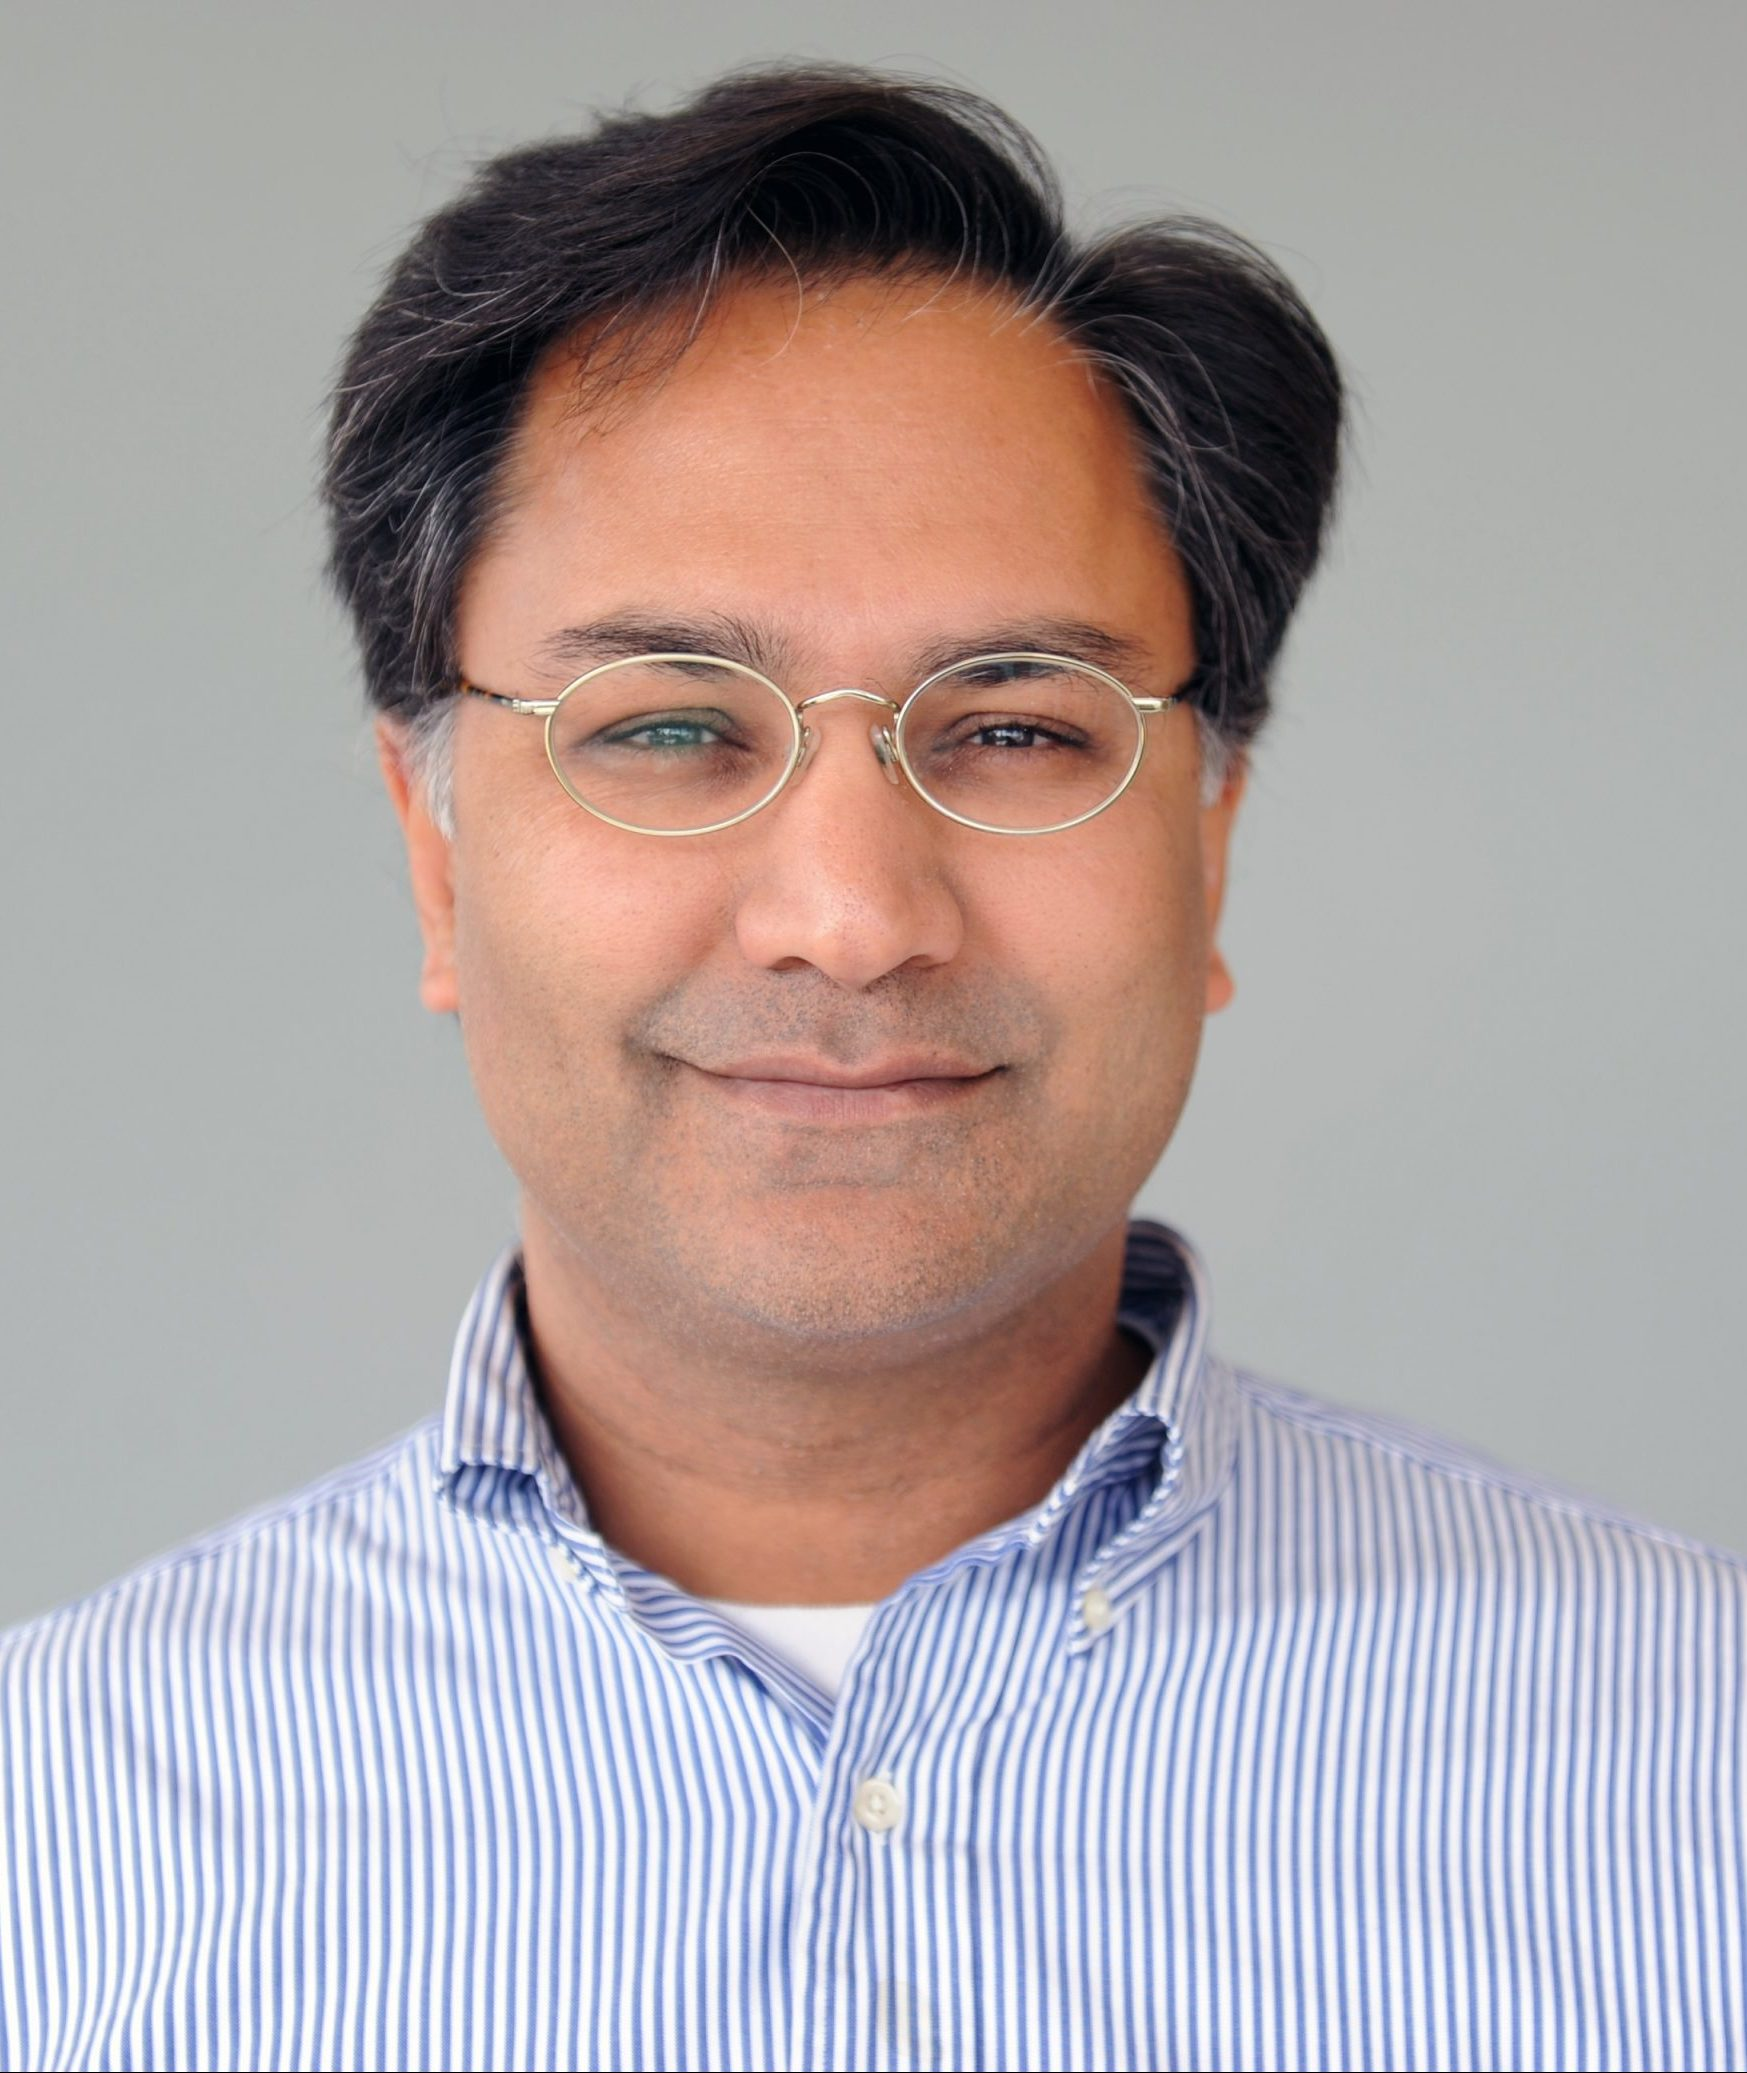 Sanjay Pathak, MD - A Contracted Provider of Memorial Healthcare